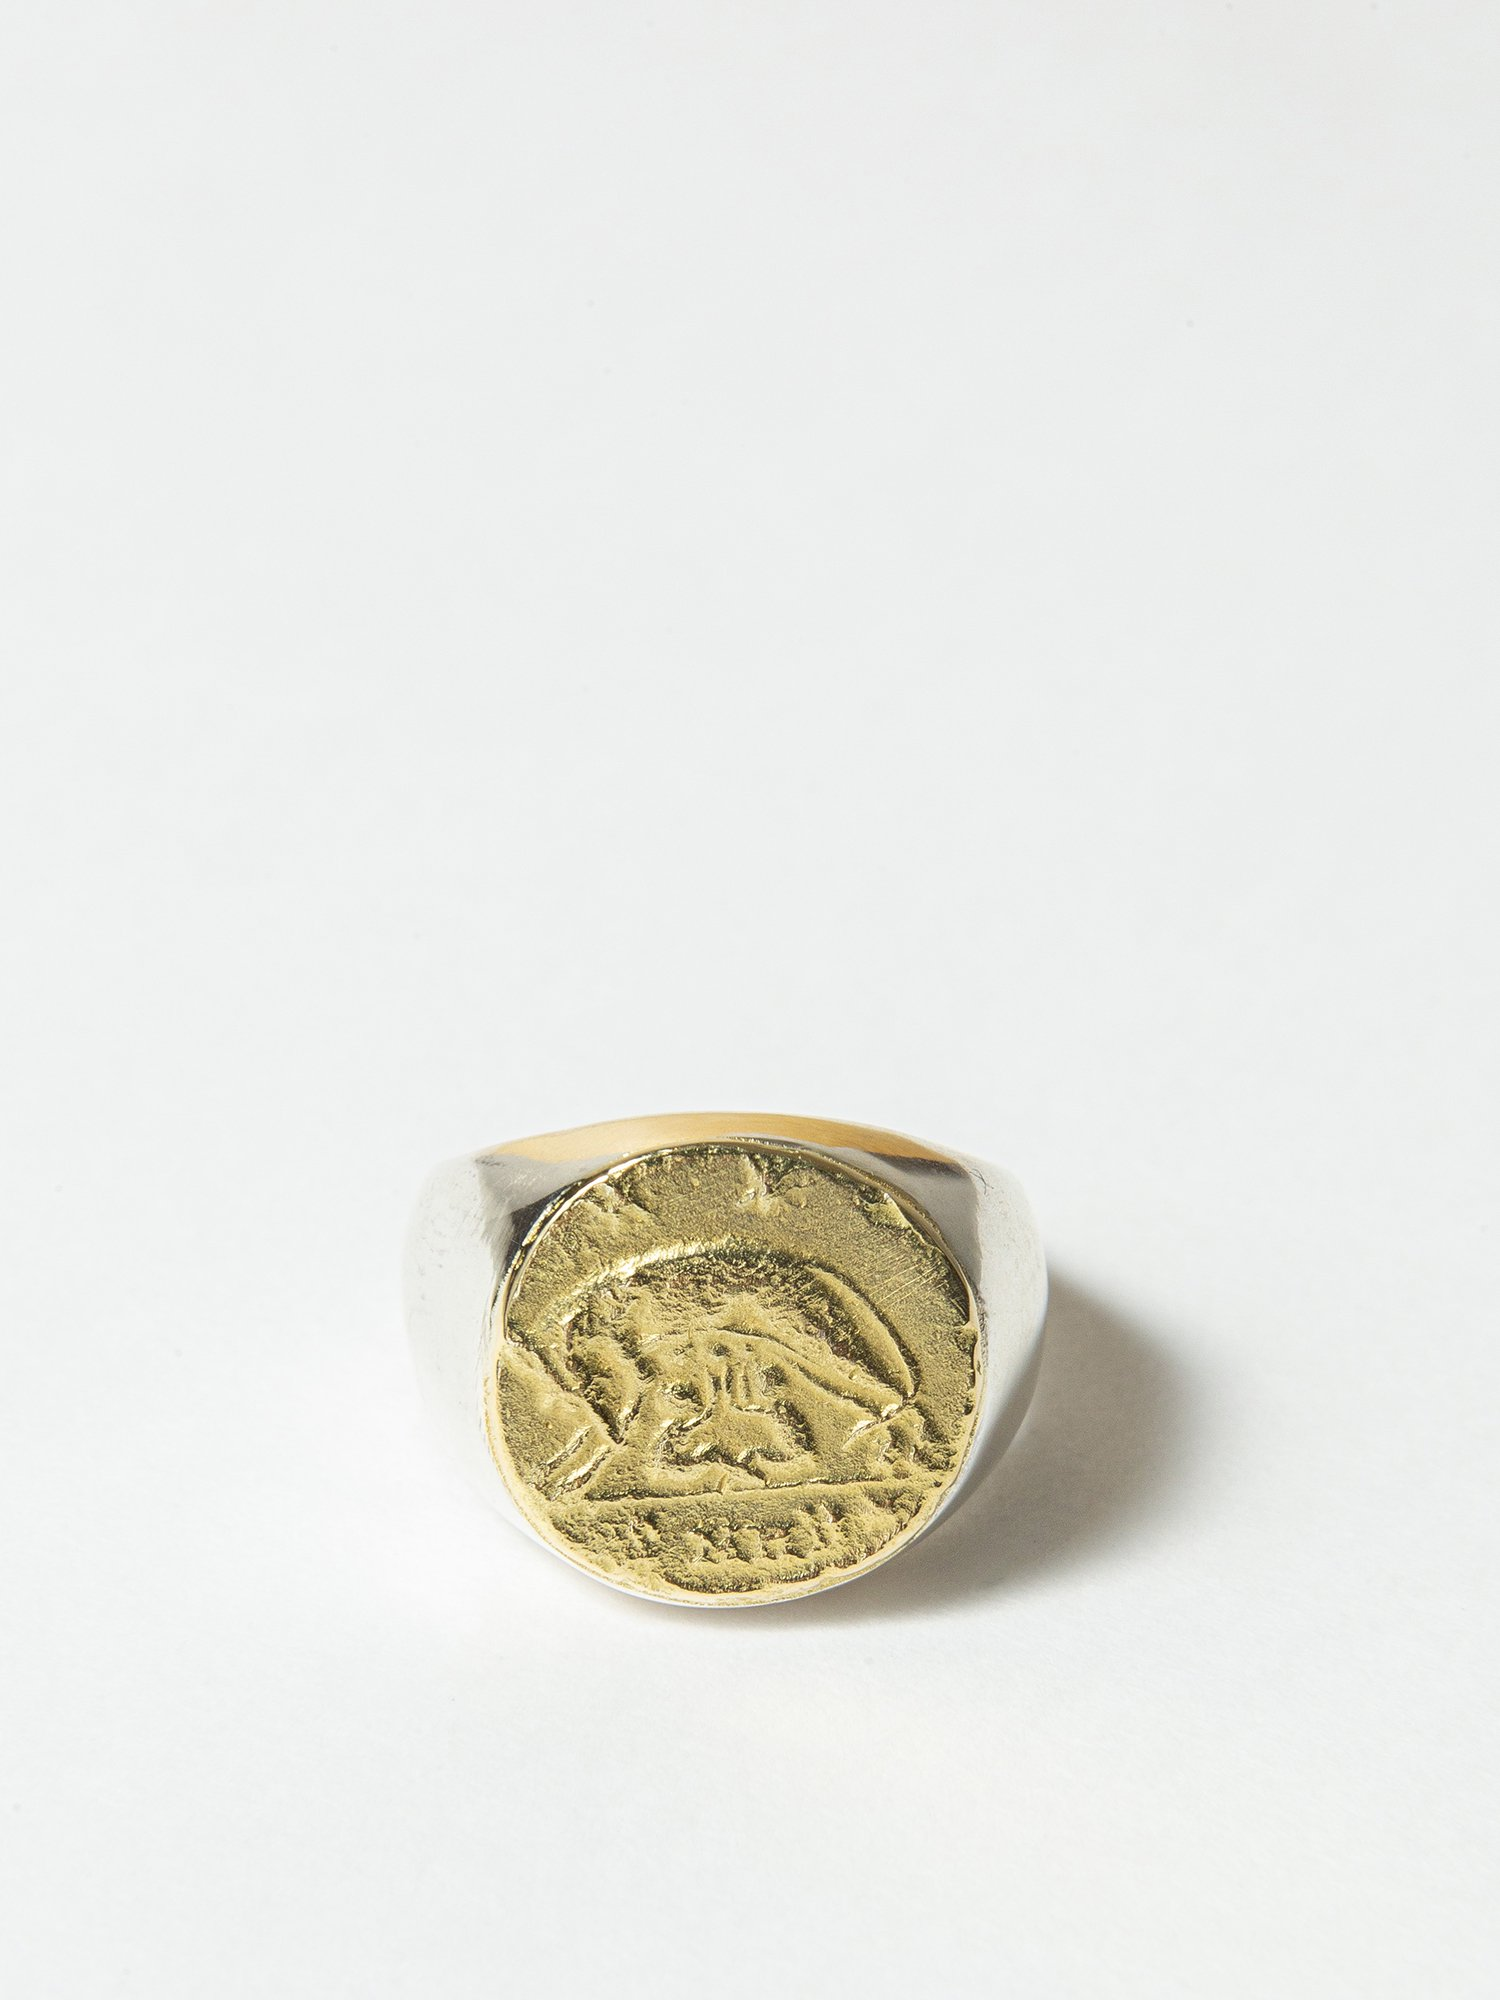 ARTEMIS / Roman coin signet ring / Romulus and Remus / 在庫商品 / 11号